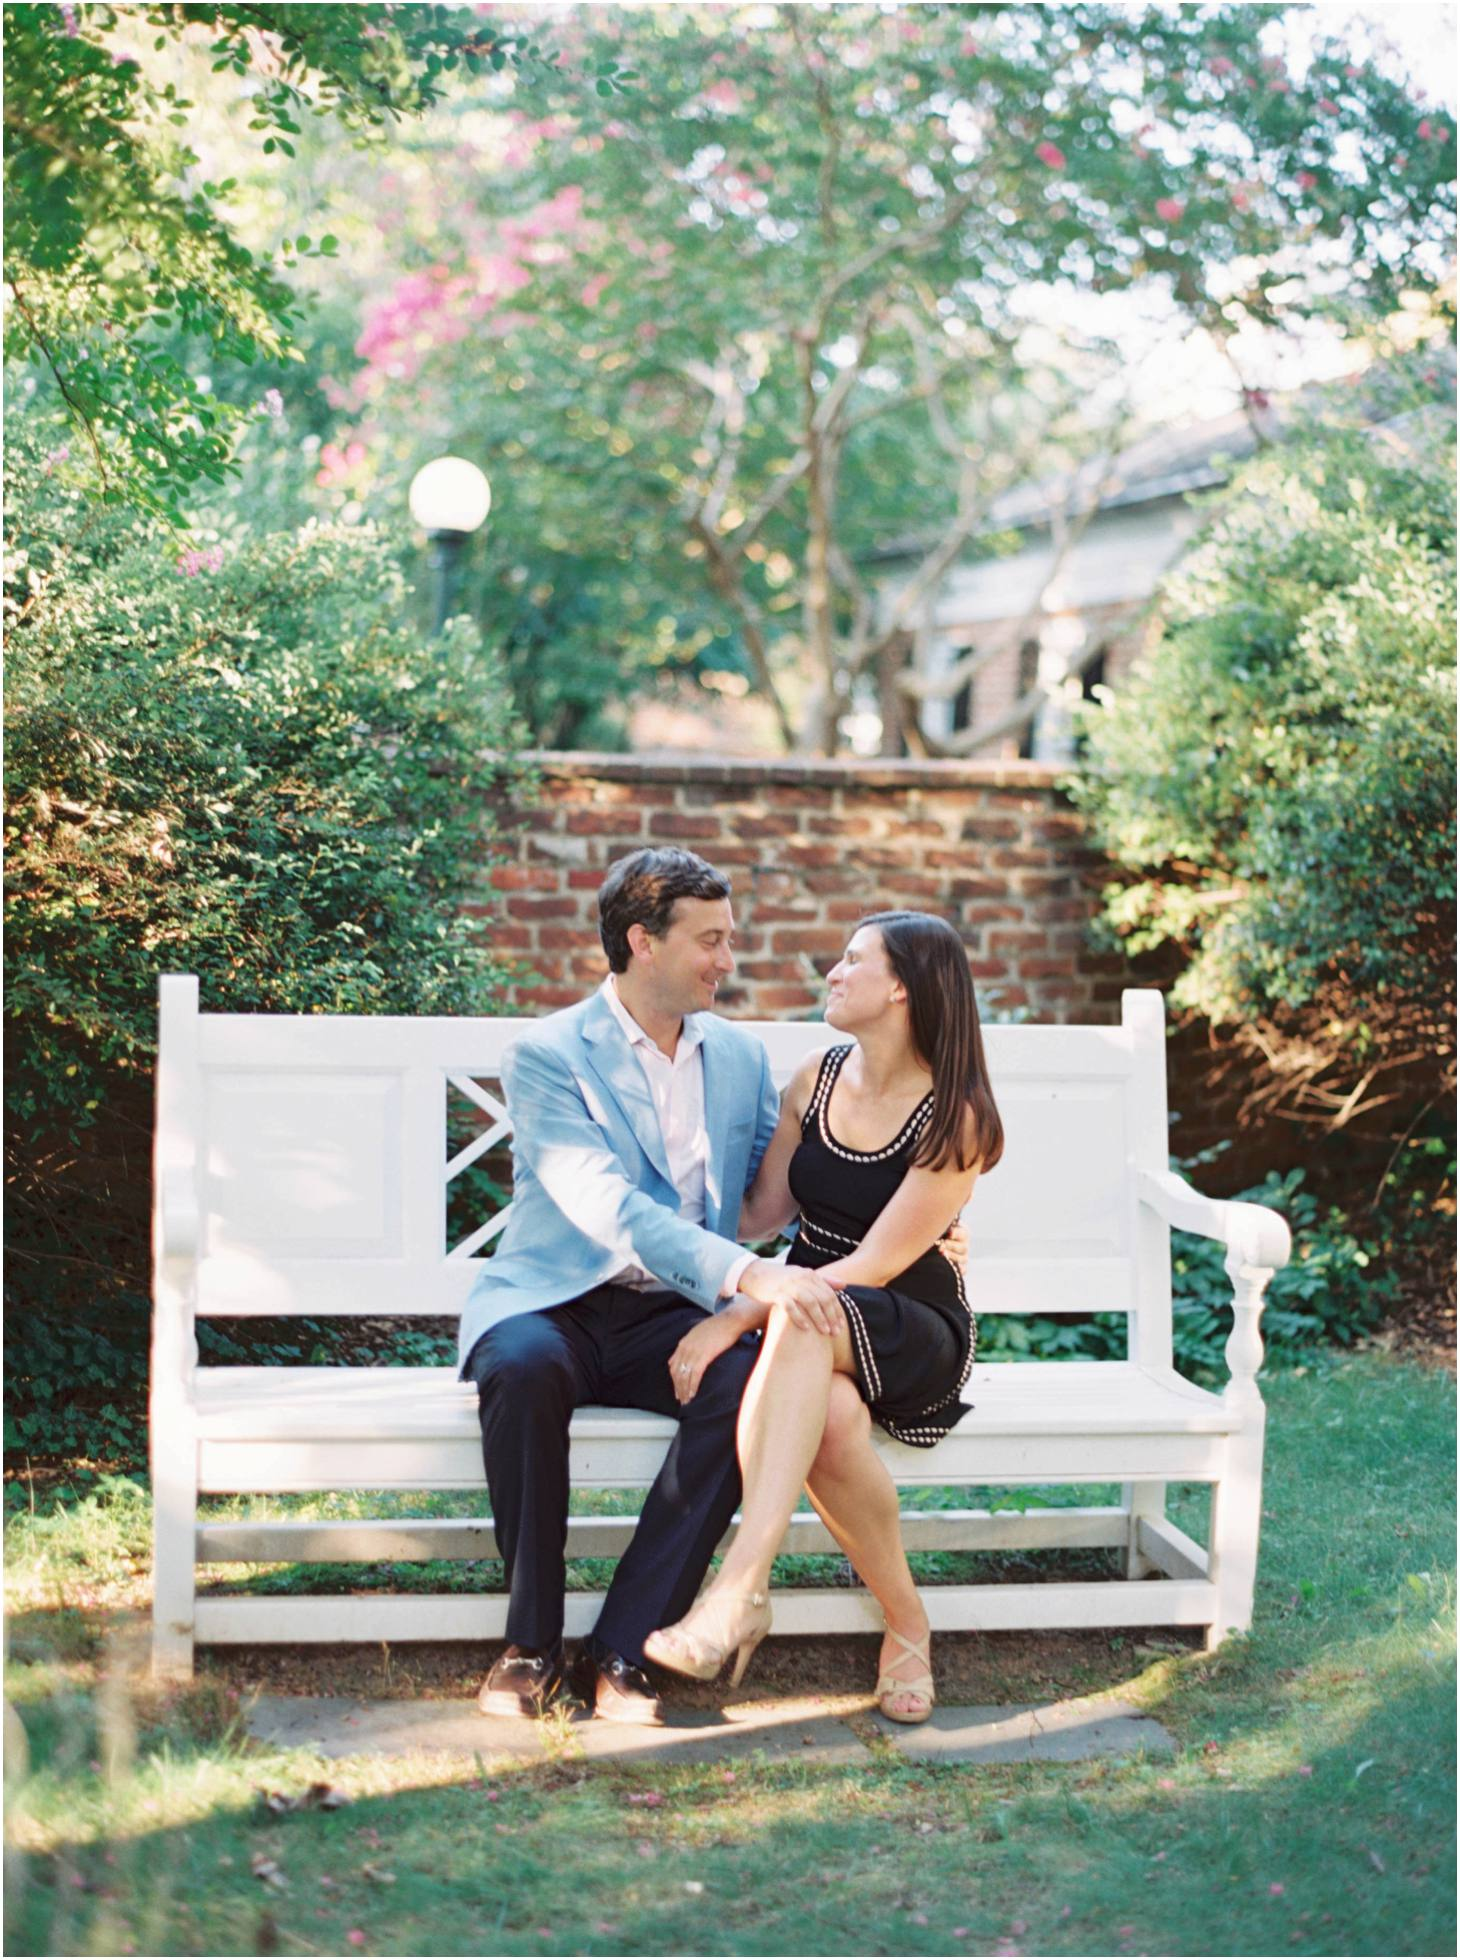 kim-stockwell-photography-fine-art-film-engagements-charlottesville-virginia-meghan-and-taylor_0838